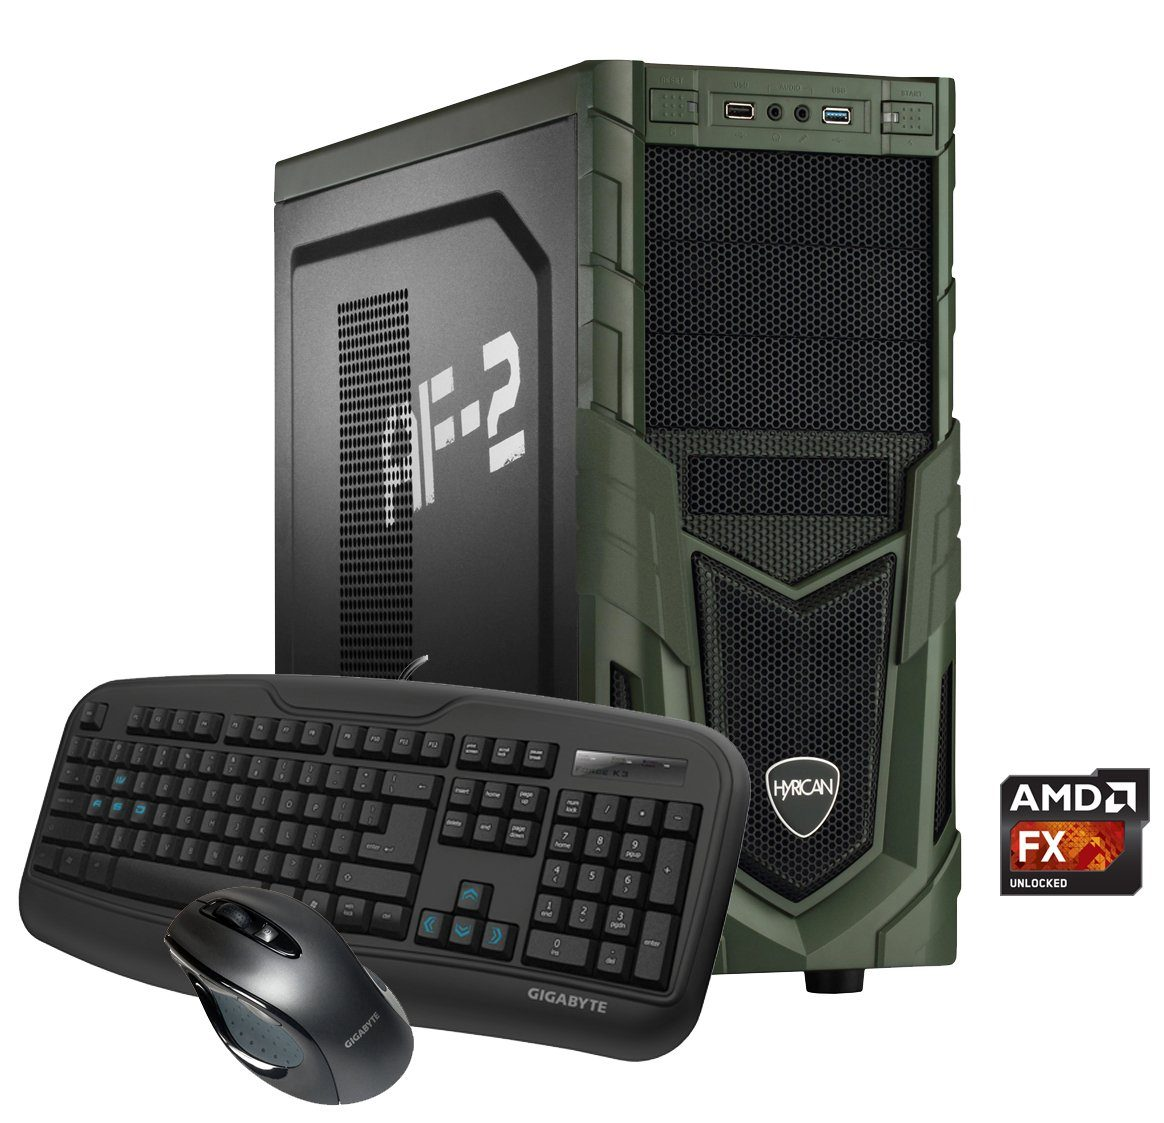 Hyrican Gaming PC AMD FX-8350, 16GB, 1TB + 240GB SSD, Radeon™ RX 480 »Military Gaming 5308«